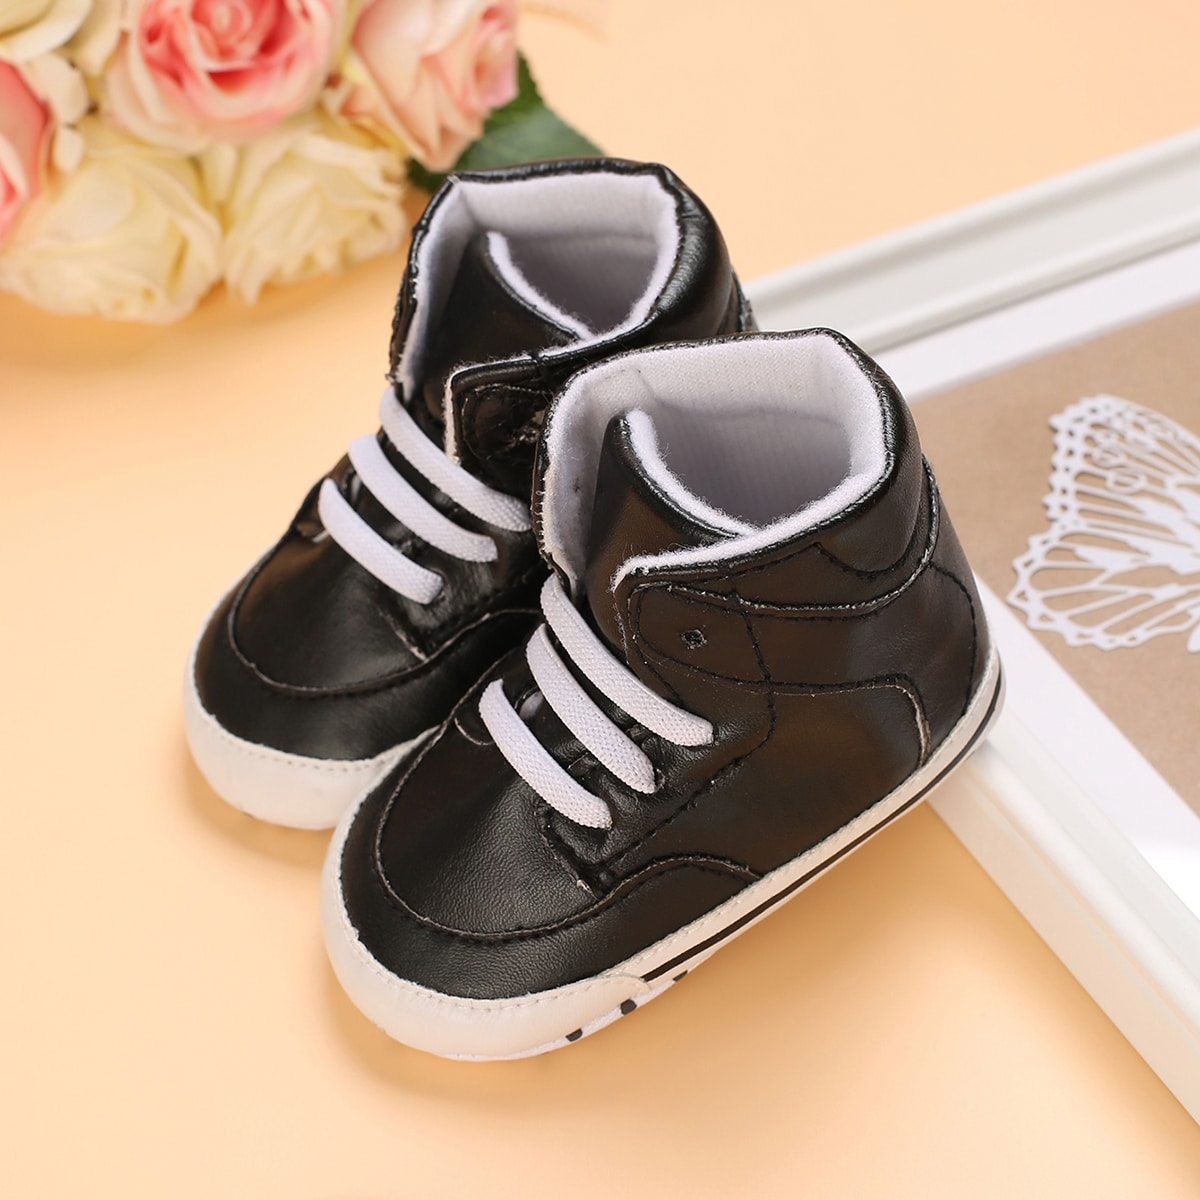 Baby High Top Lace-up Sneakers, SHEIN  - buy with discount